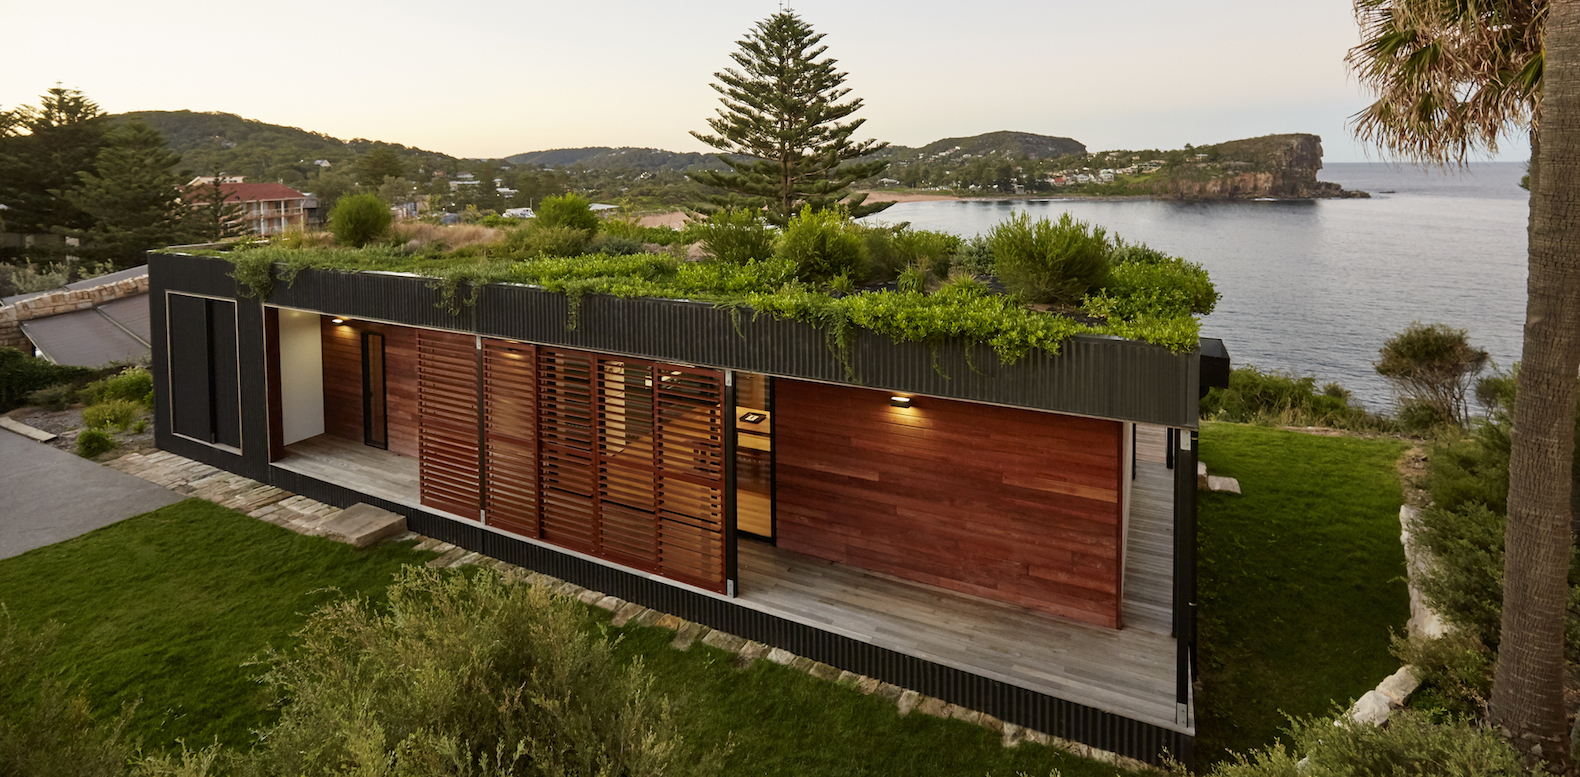 Eco-friendly Avalon House is a green-roofed beach getaway that takes only 6 weeks to build